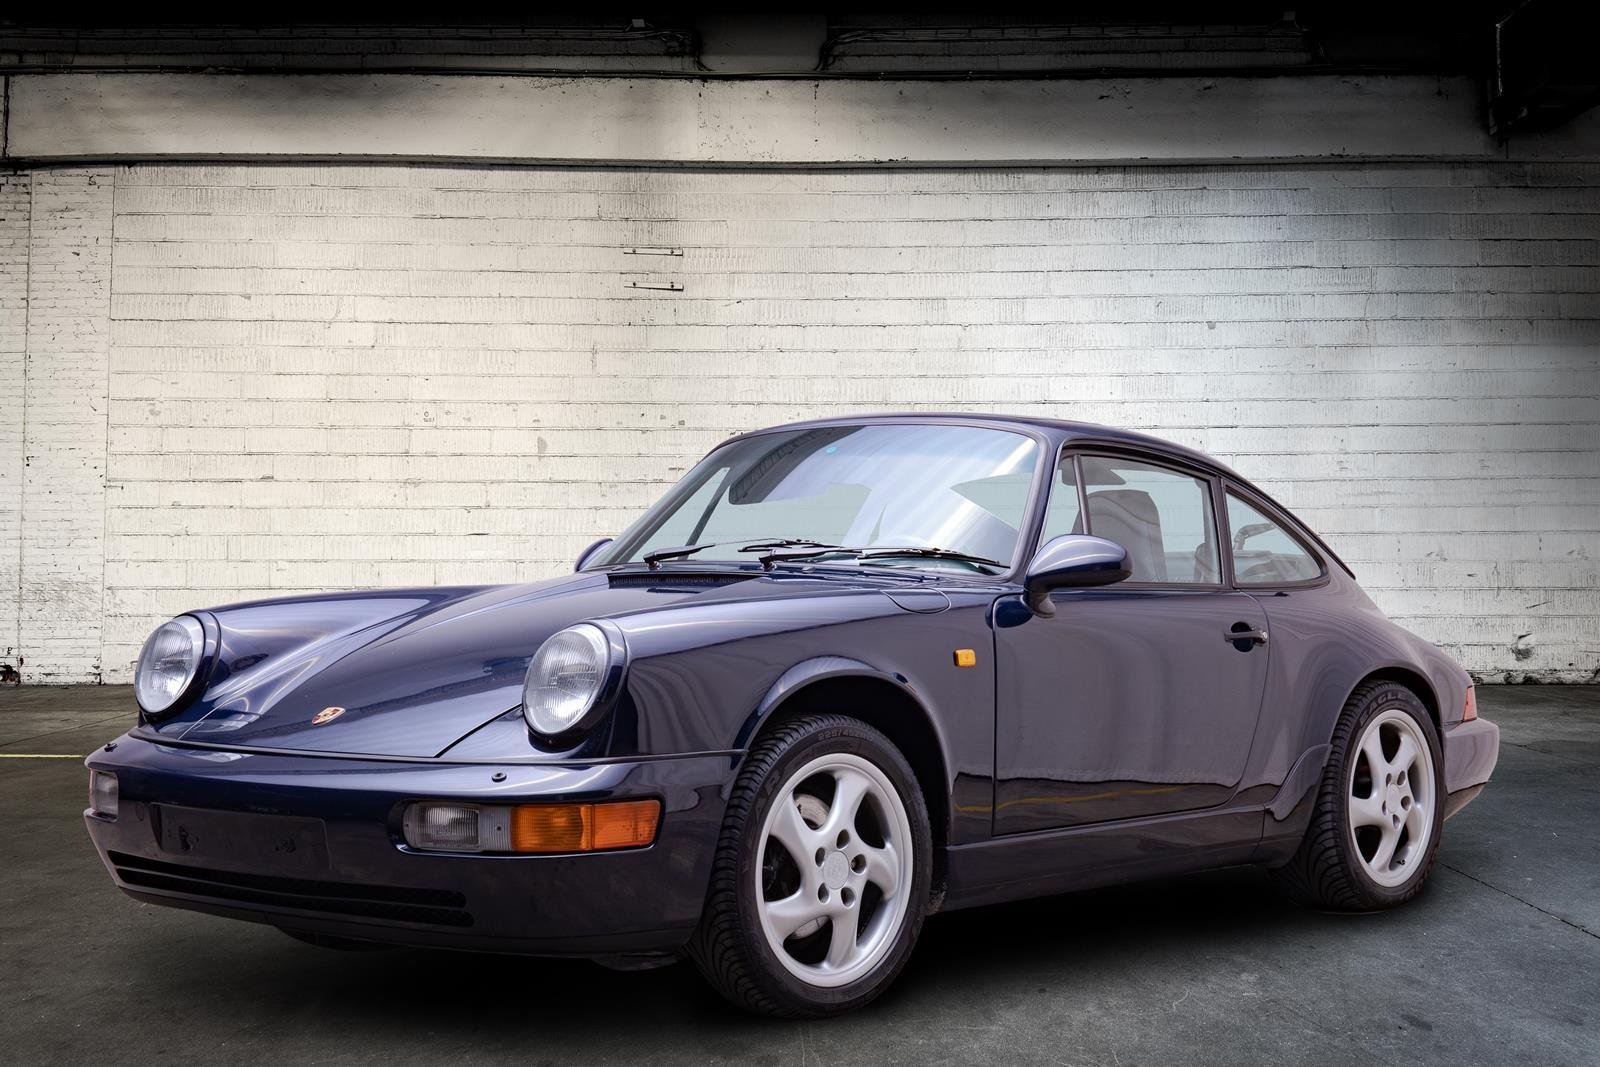 Porsche Carrera 4 3,6L 1989 For Sale (picture 1 of 6)